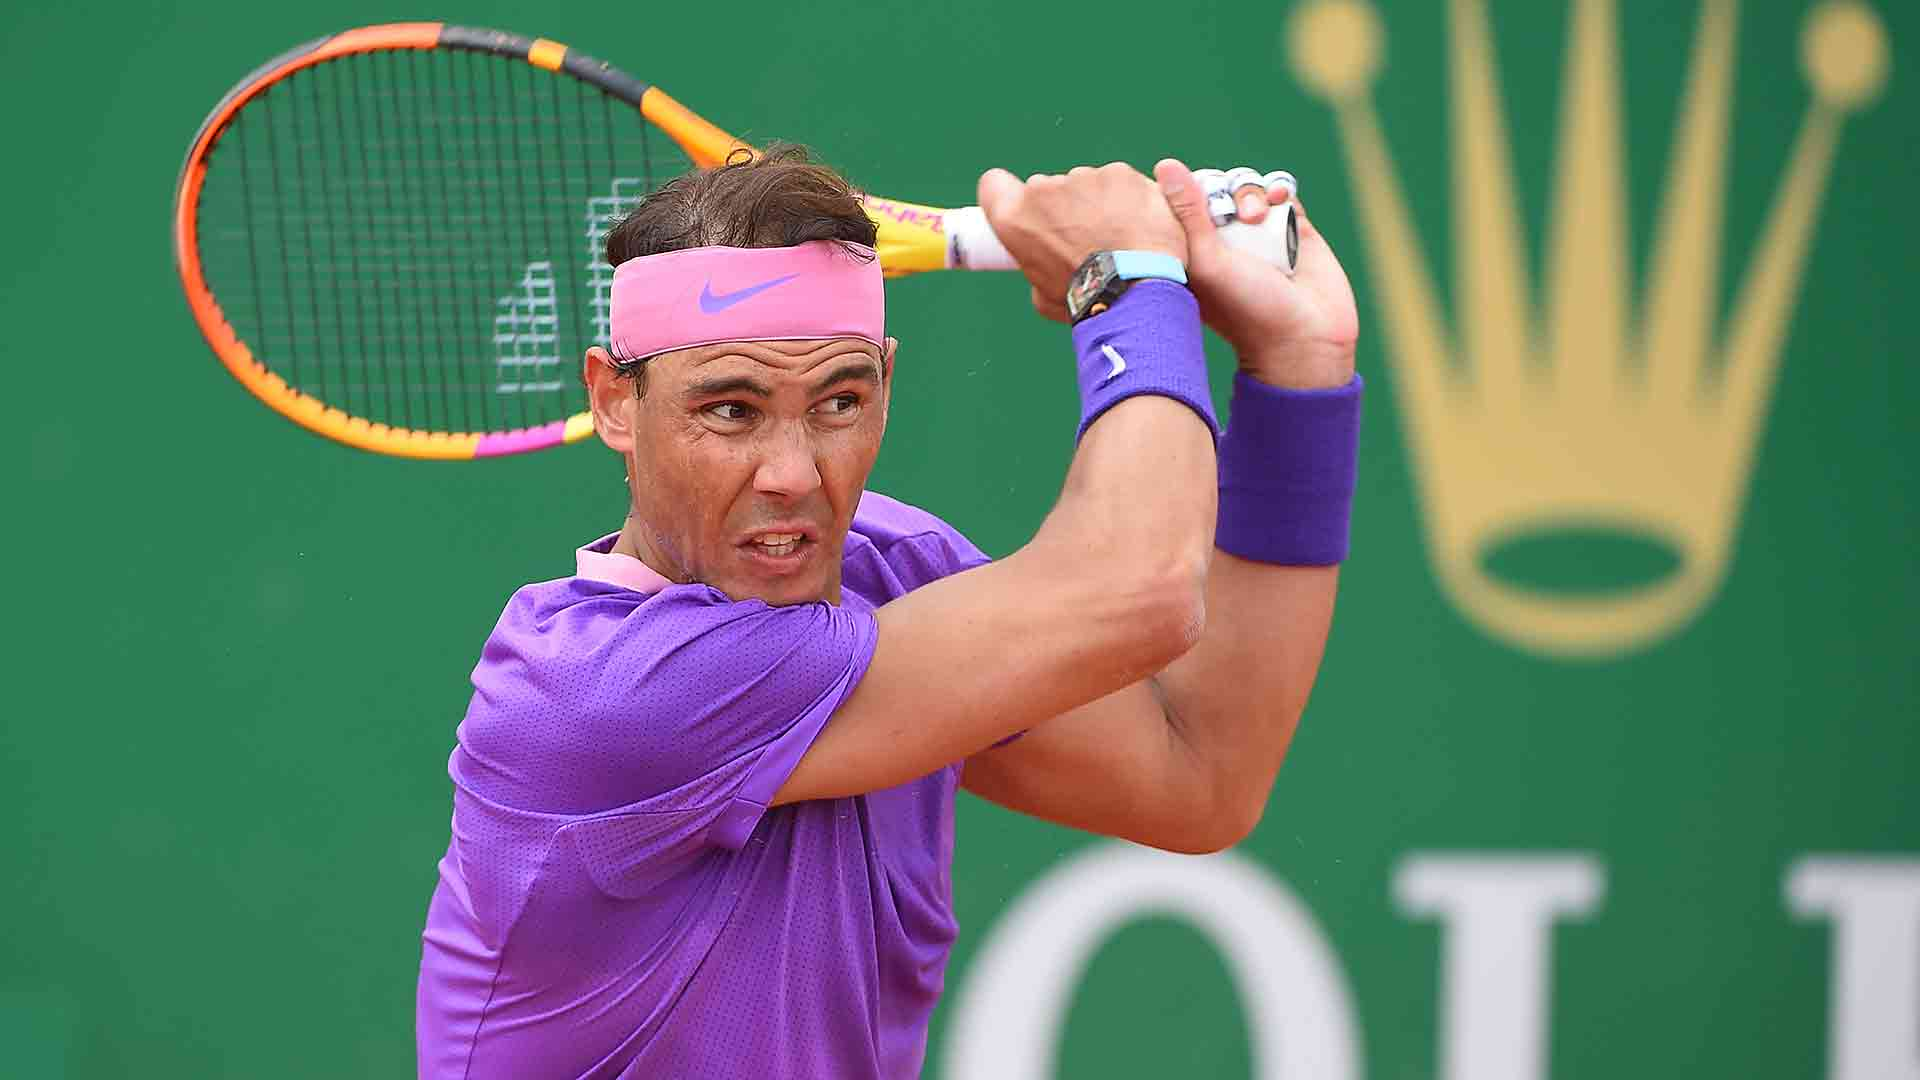 Nadal Sweeps Past Delbonis, Fires Warning In Monte-Carlo - ATP Tour